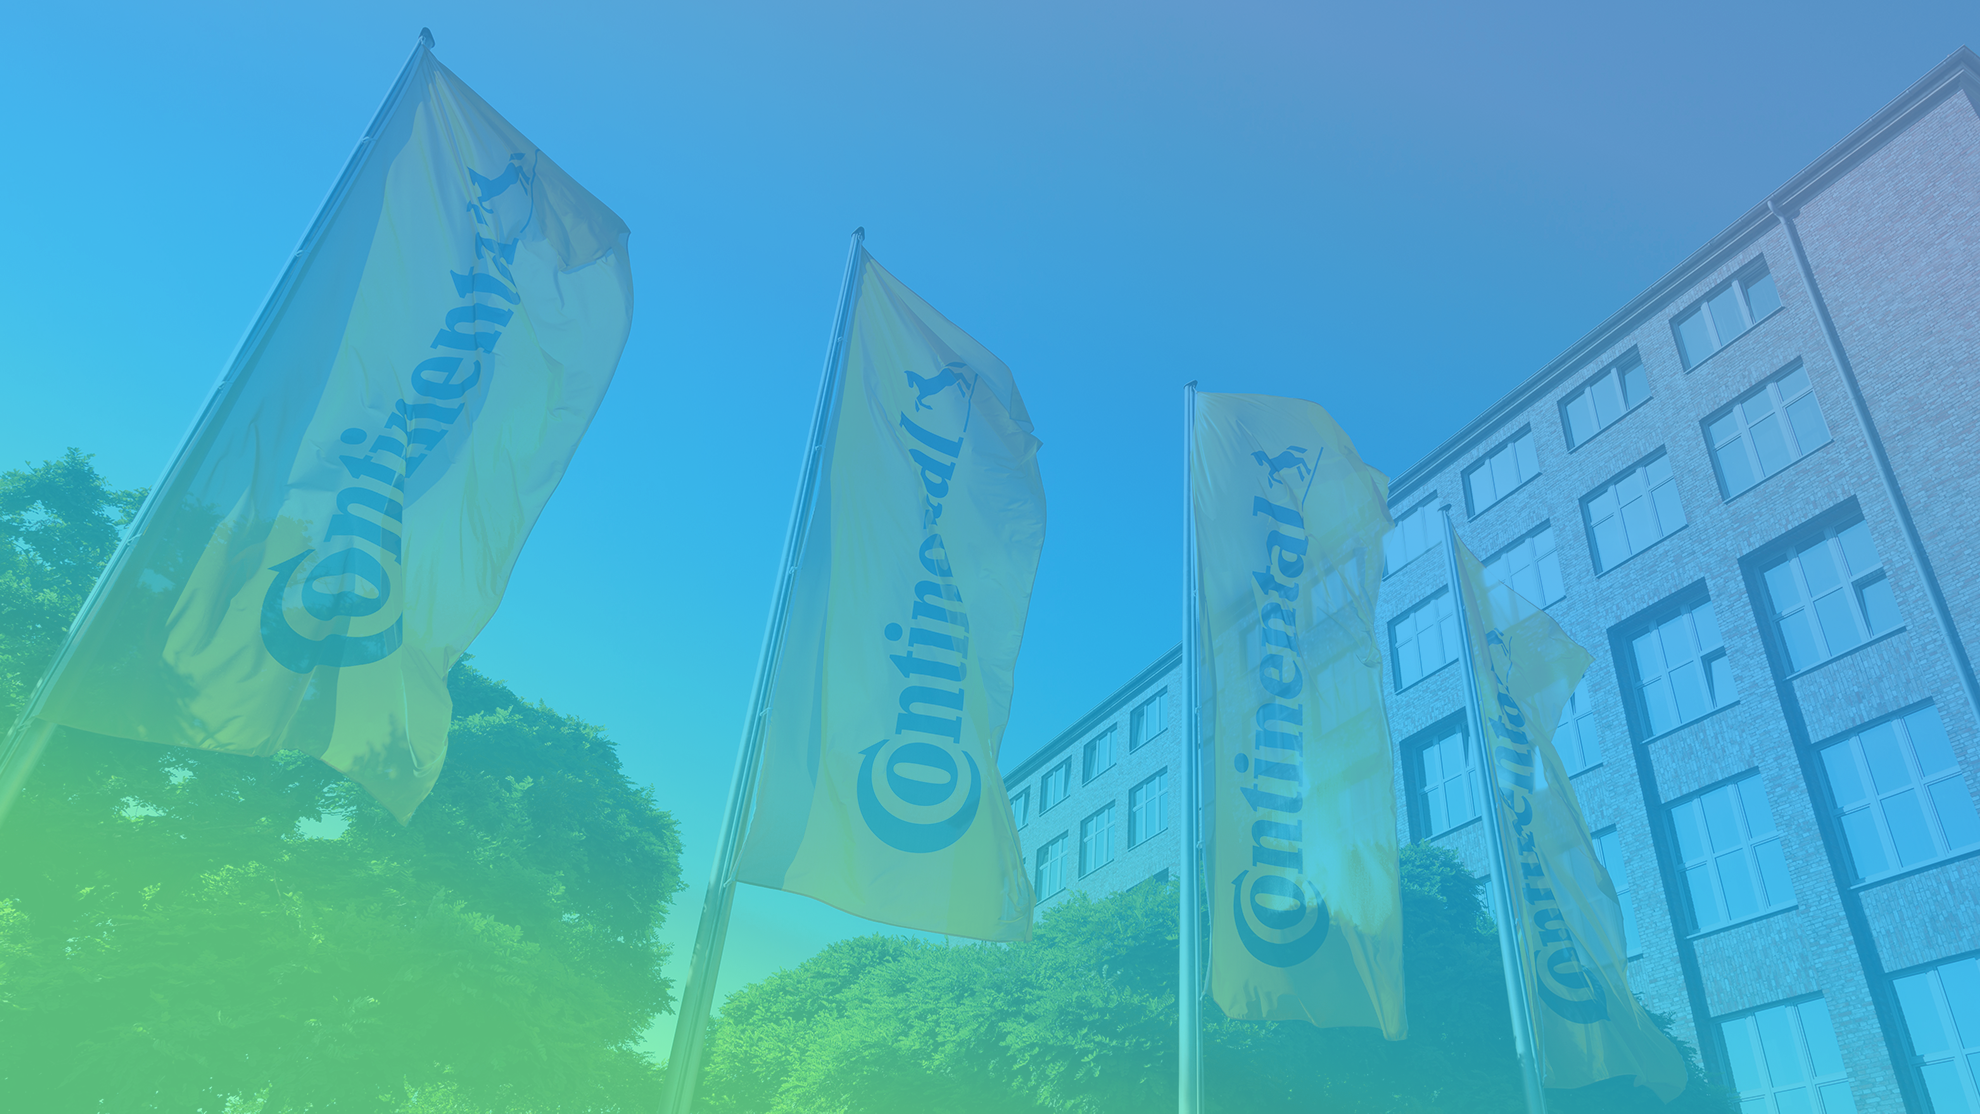 Contintental_HQ_Hannover_Foto.png